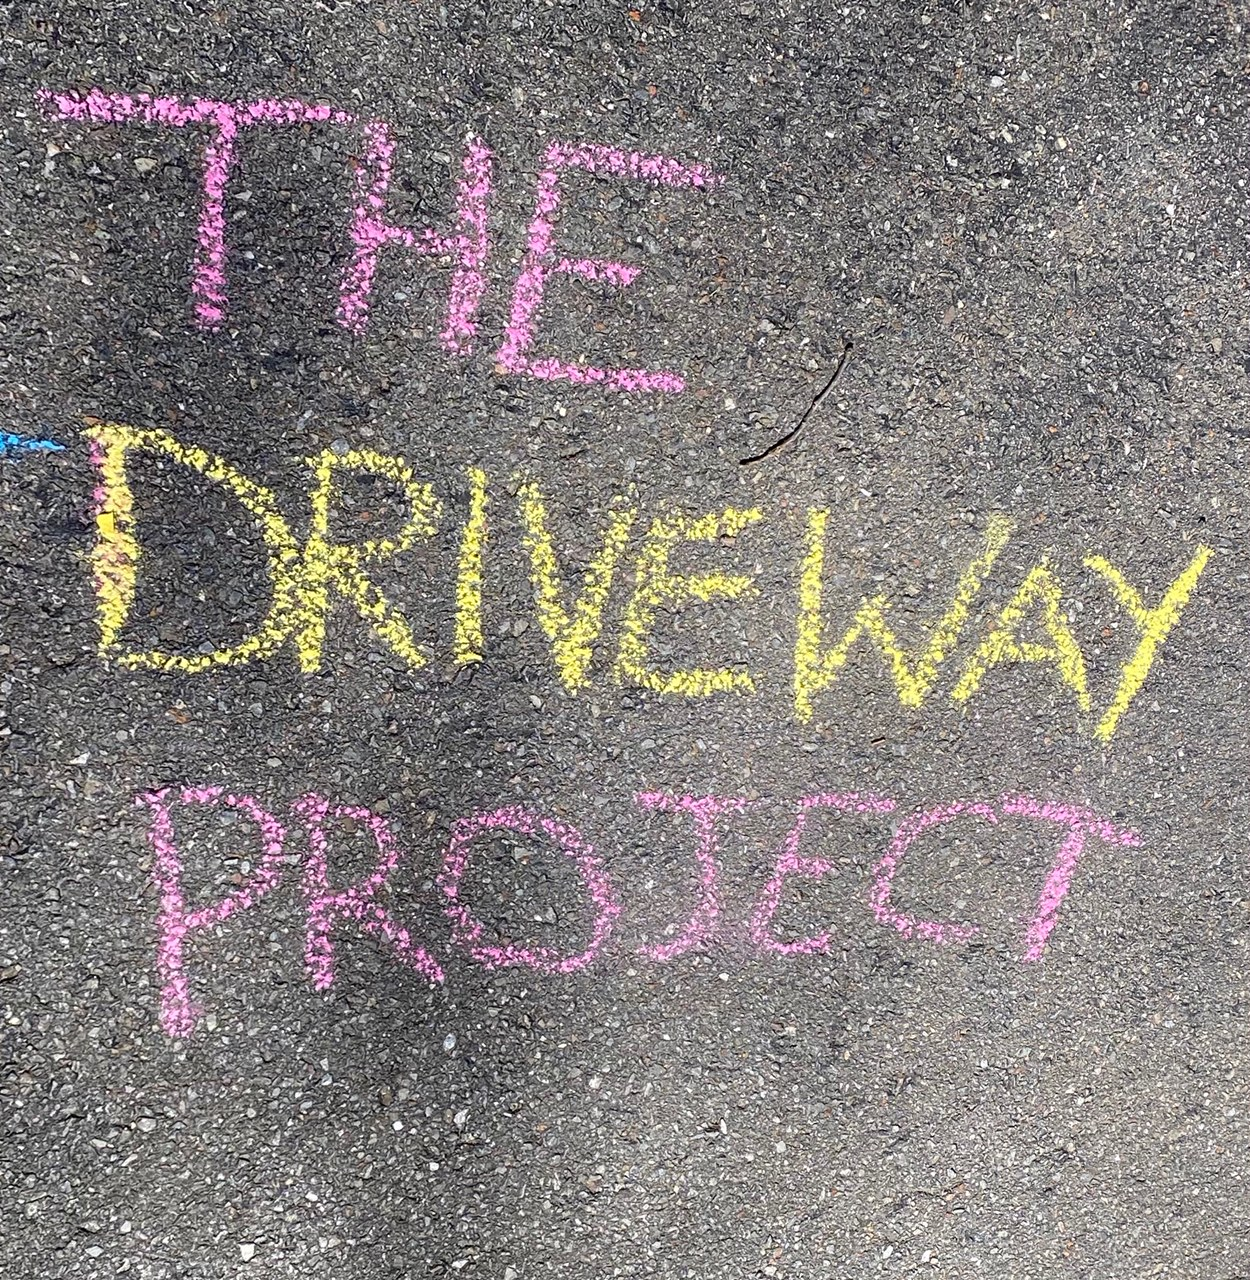 The Driveway Project